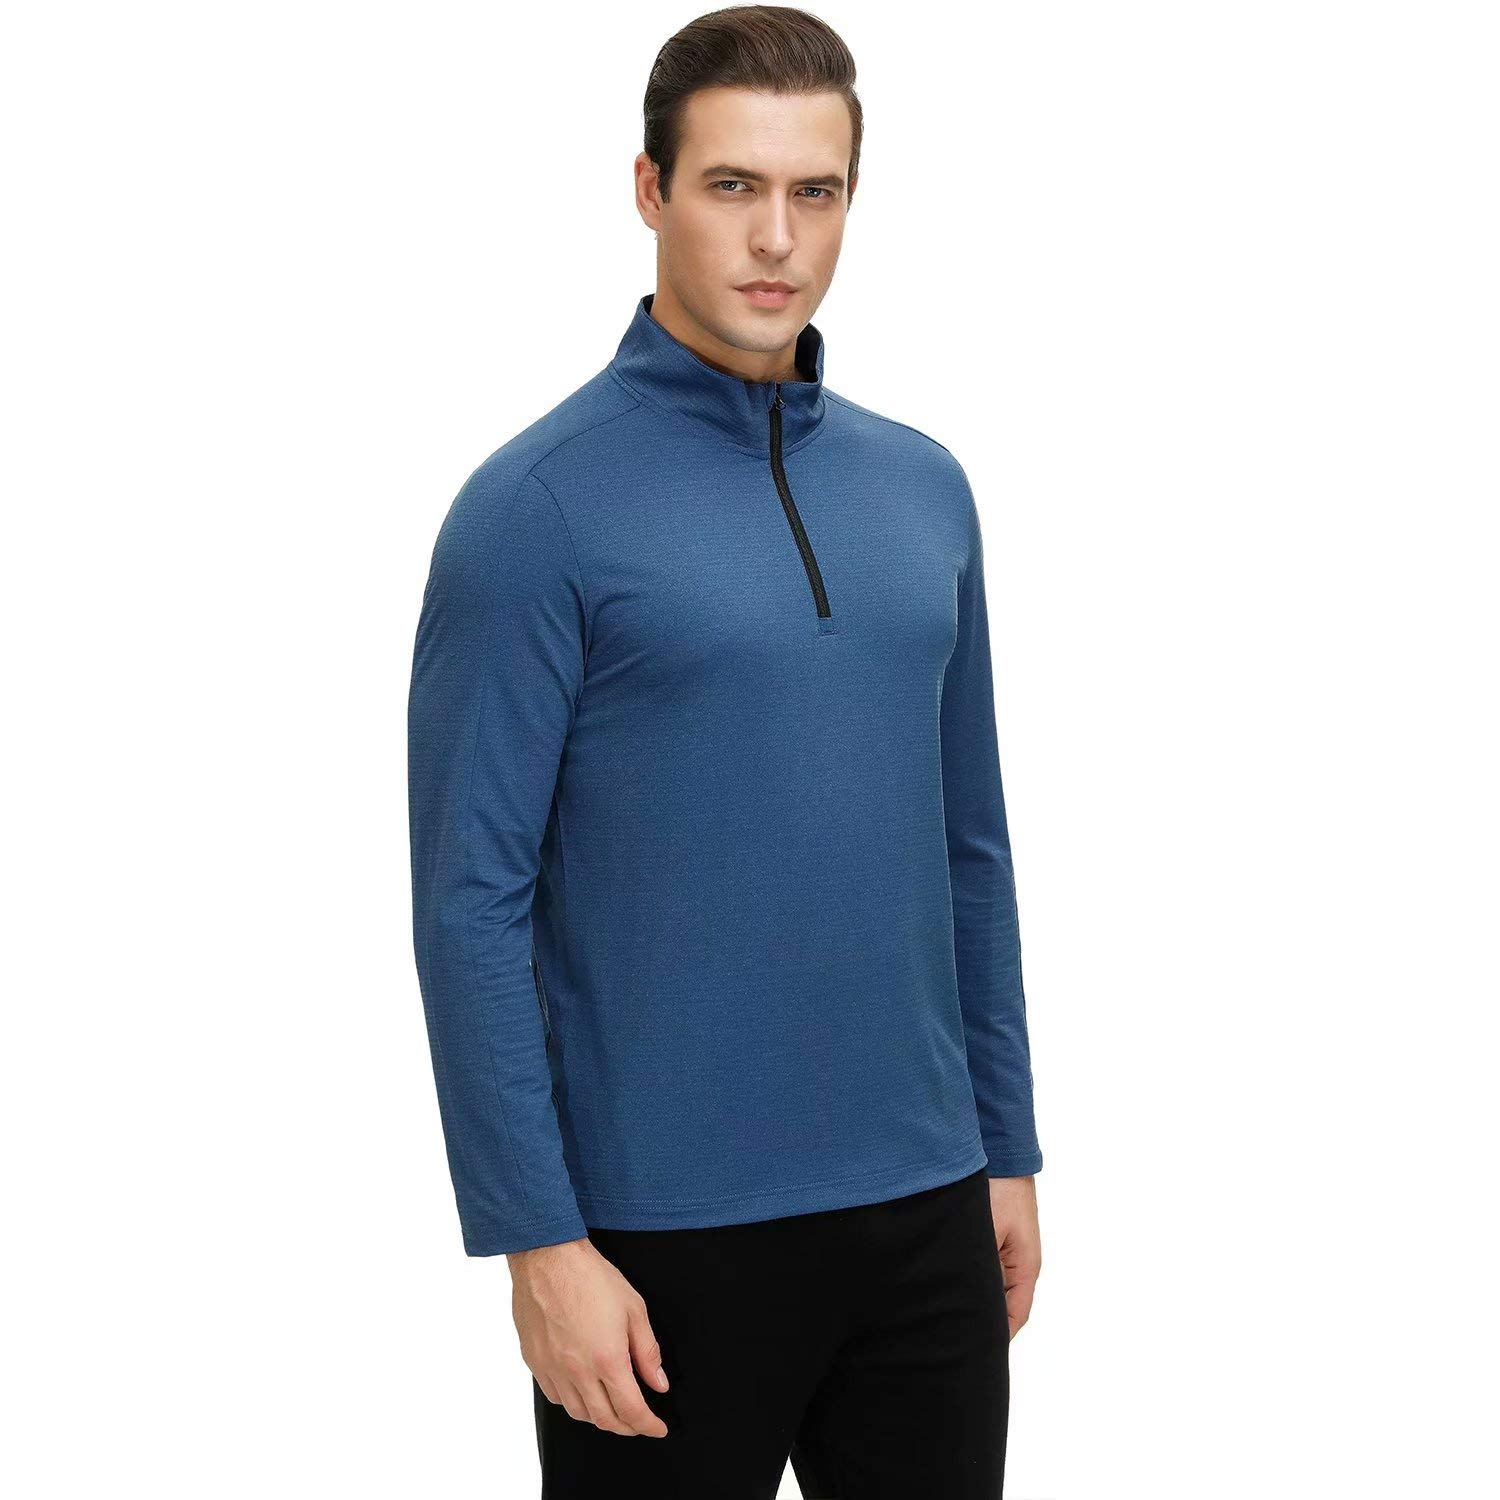 Mens Long Sleeve Half Zip Running Top Quick Dry Lightweight Sport Breathable Top for Workout Jogging Warm-up Gym Fitness